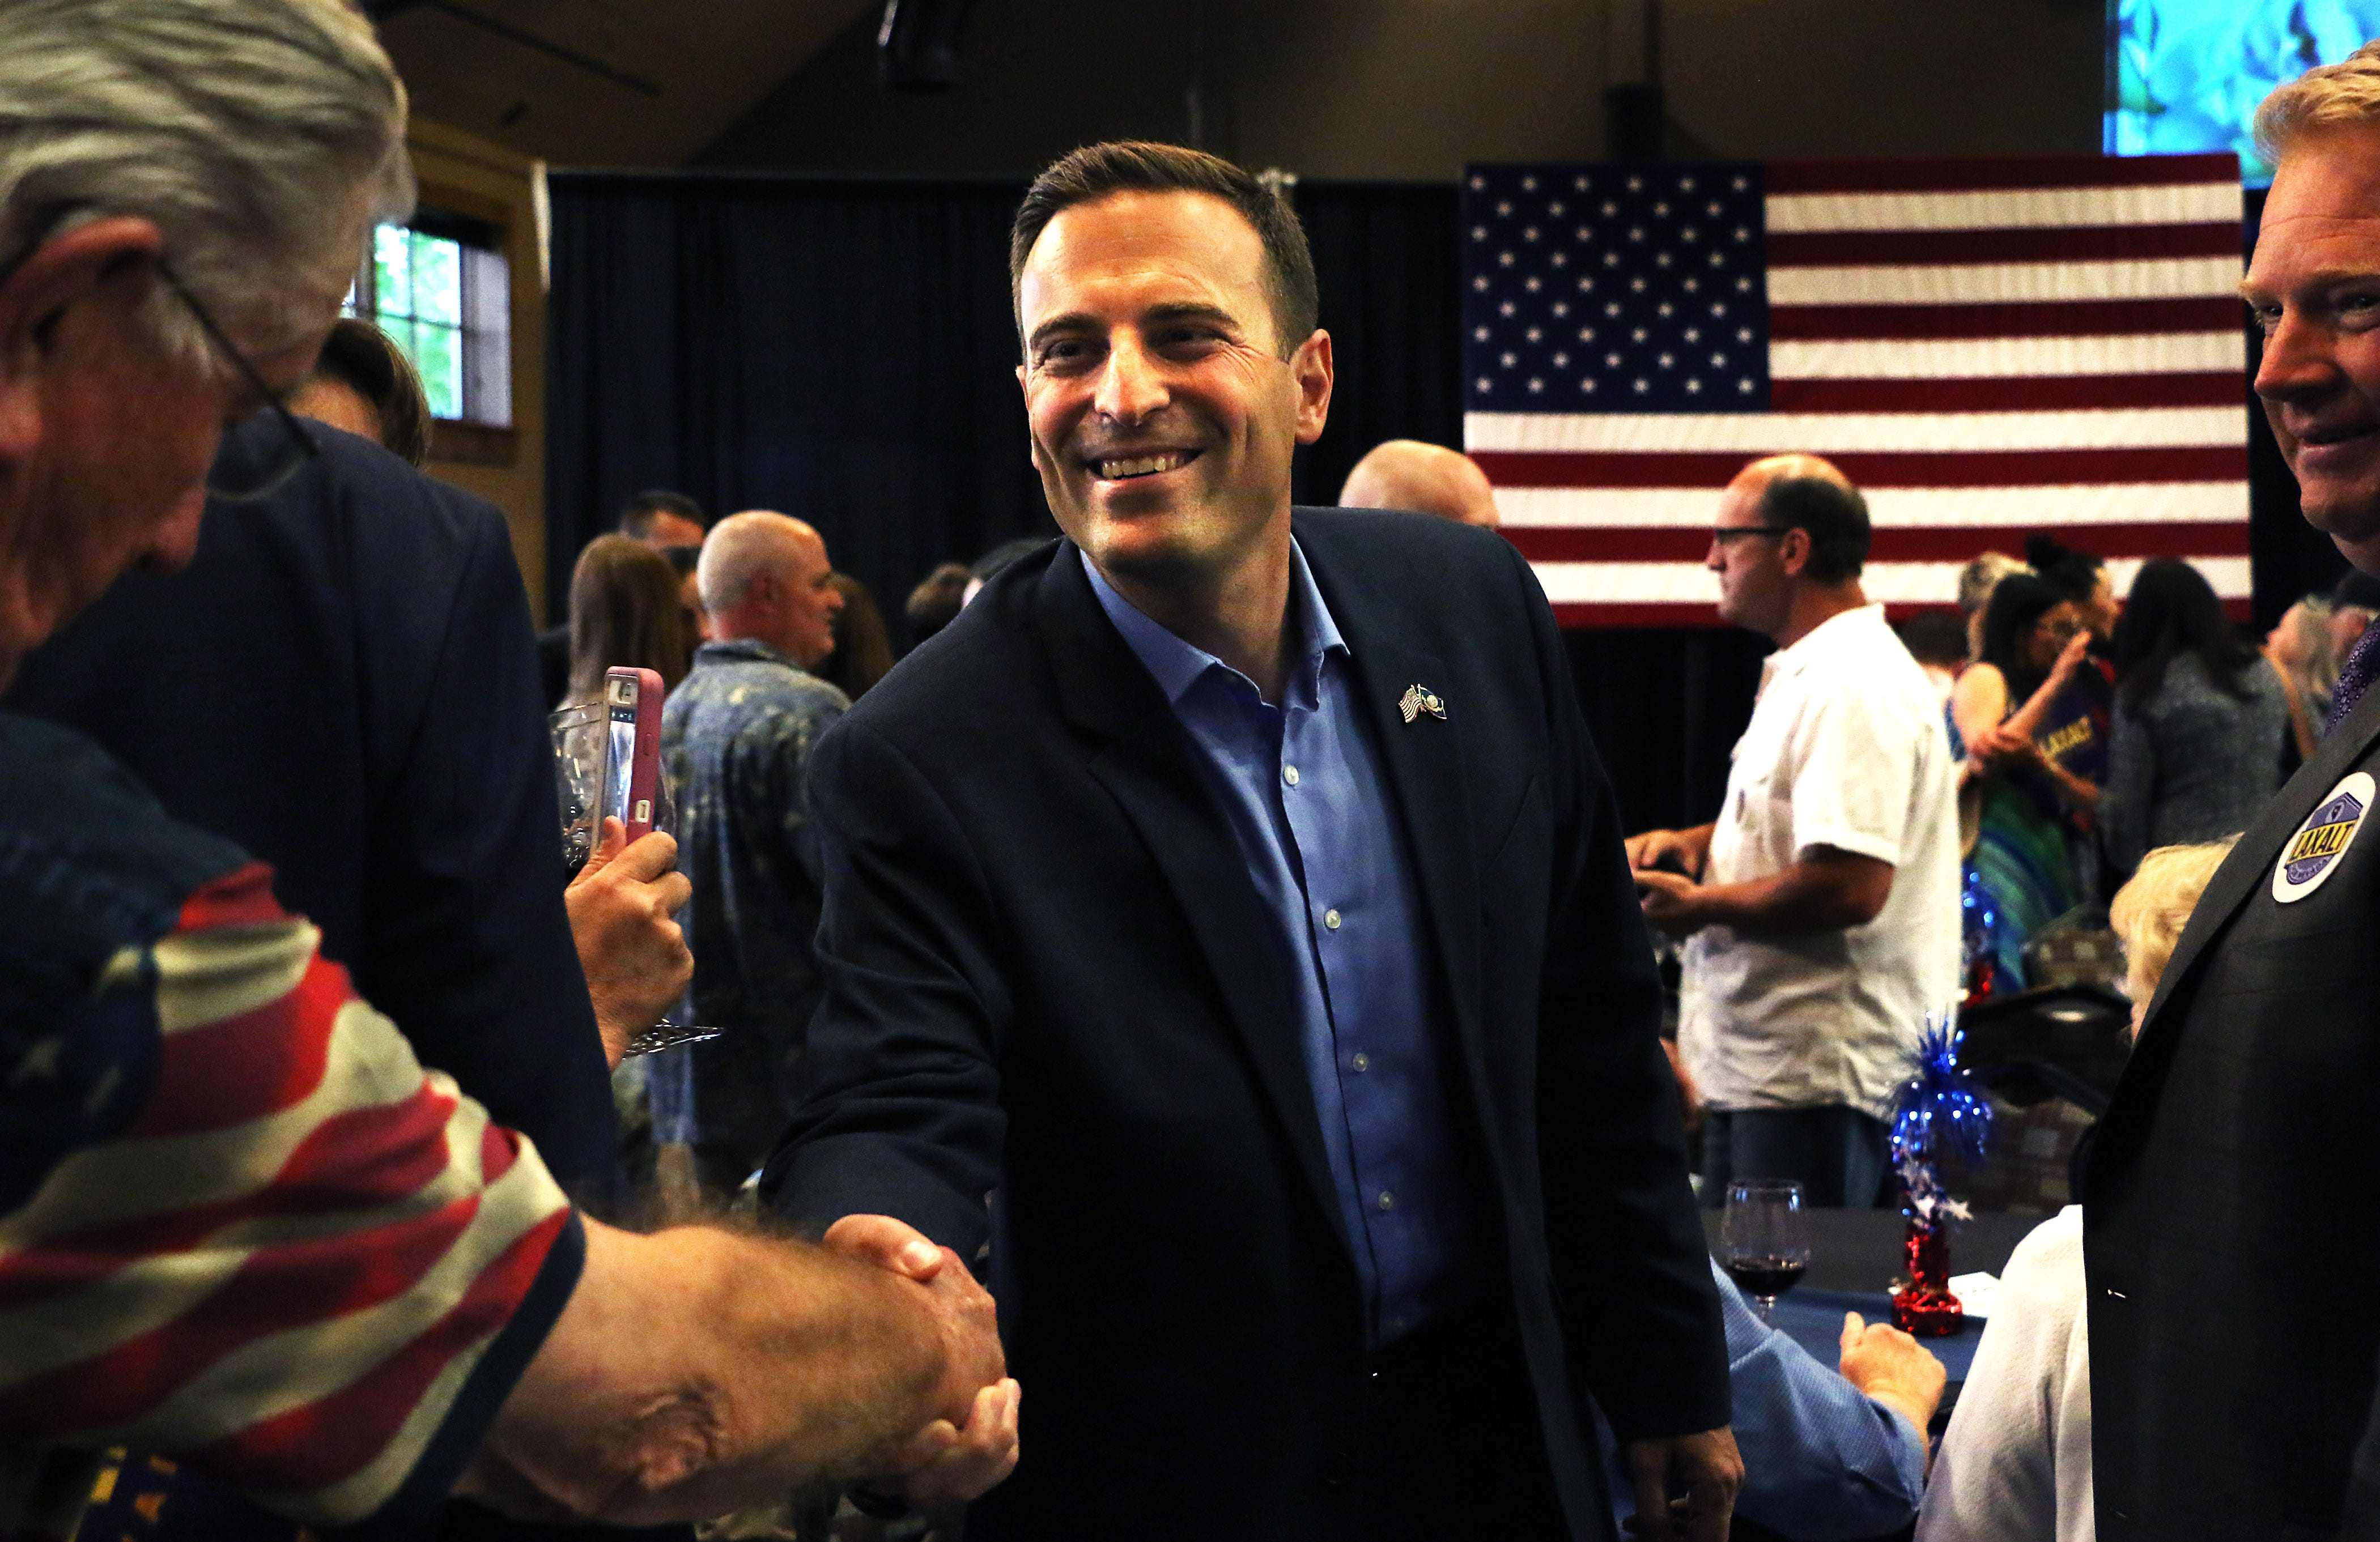 Laxalt on his (sometimes icy) relationship with Sandoval: 'I hope to earn his vote' | Reno Gazette Journal